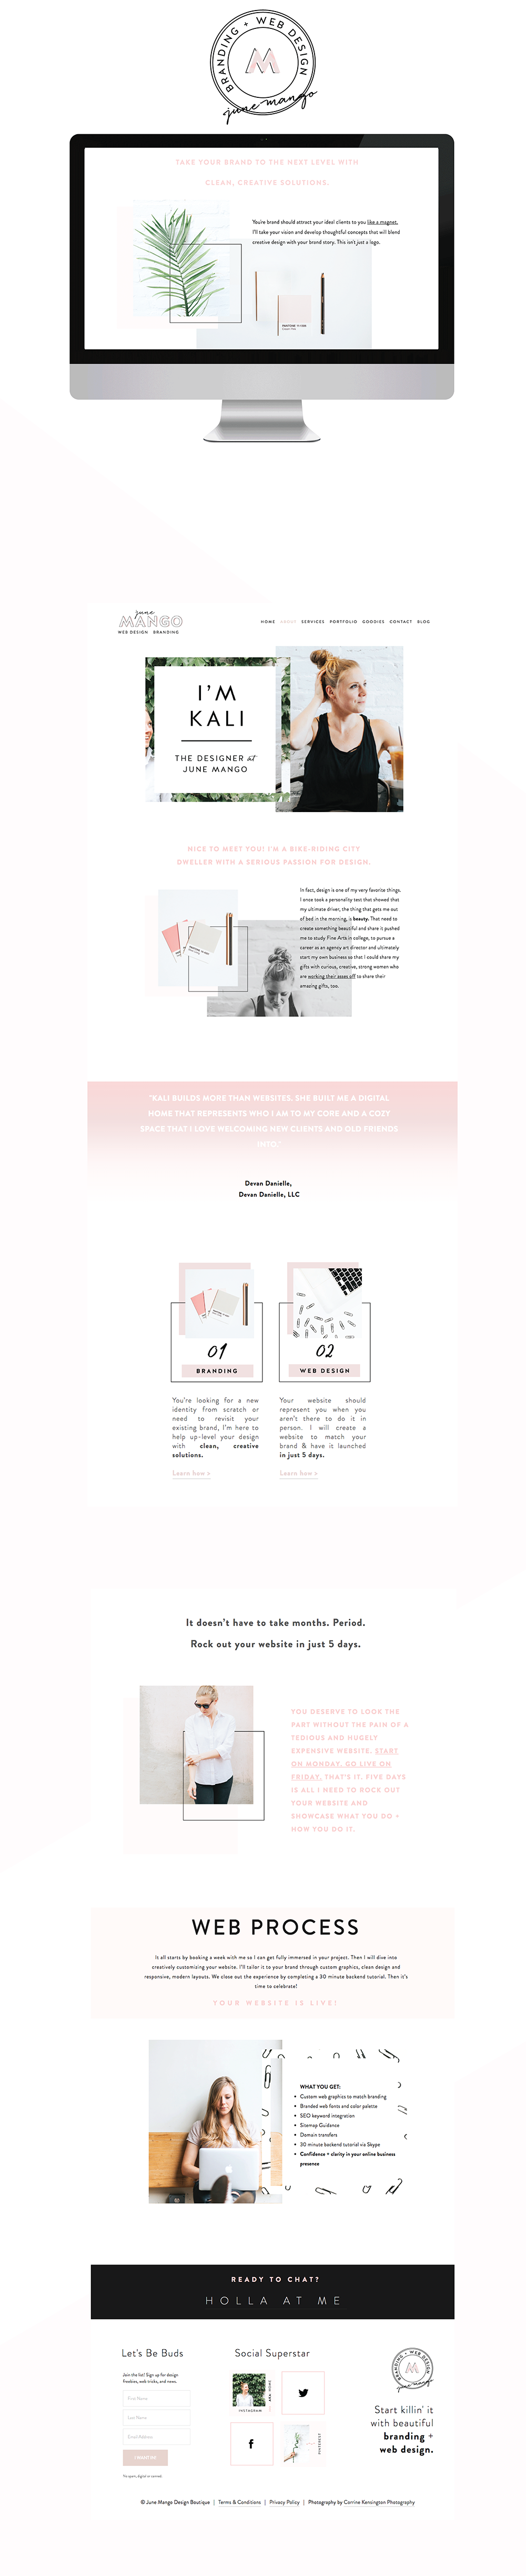 Feminine-Web-Design-June-Mango-27.png